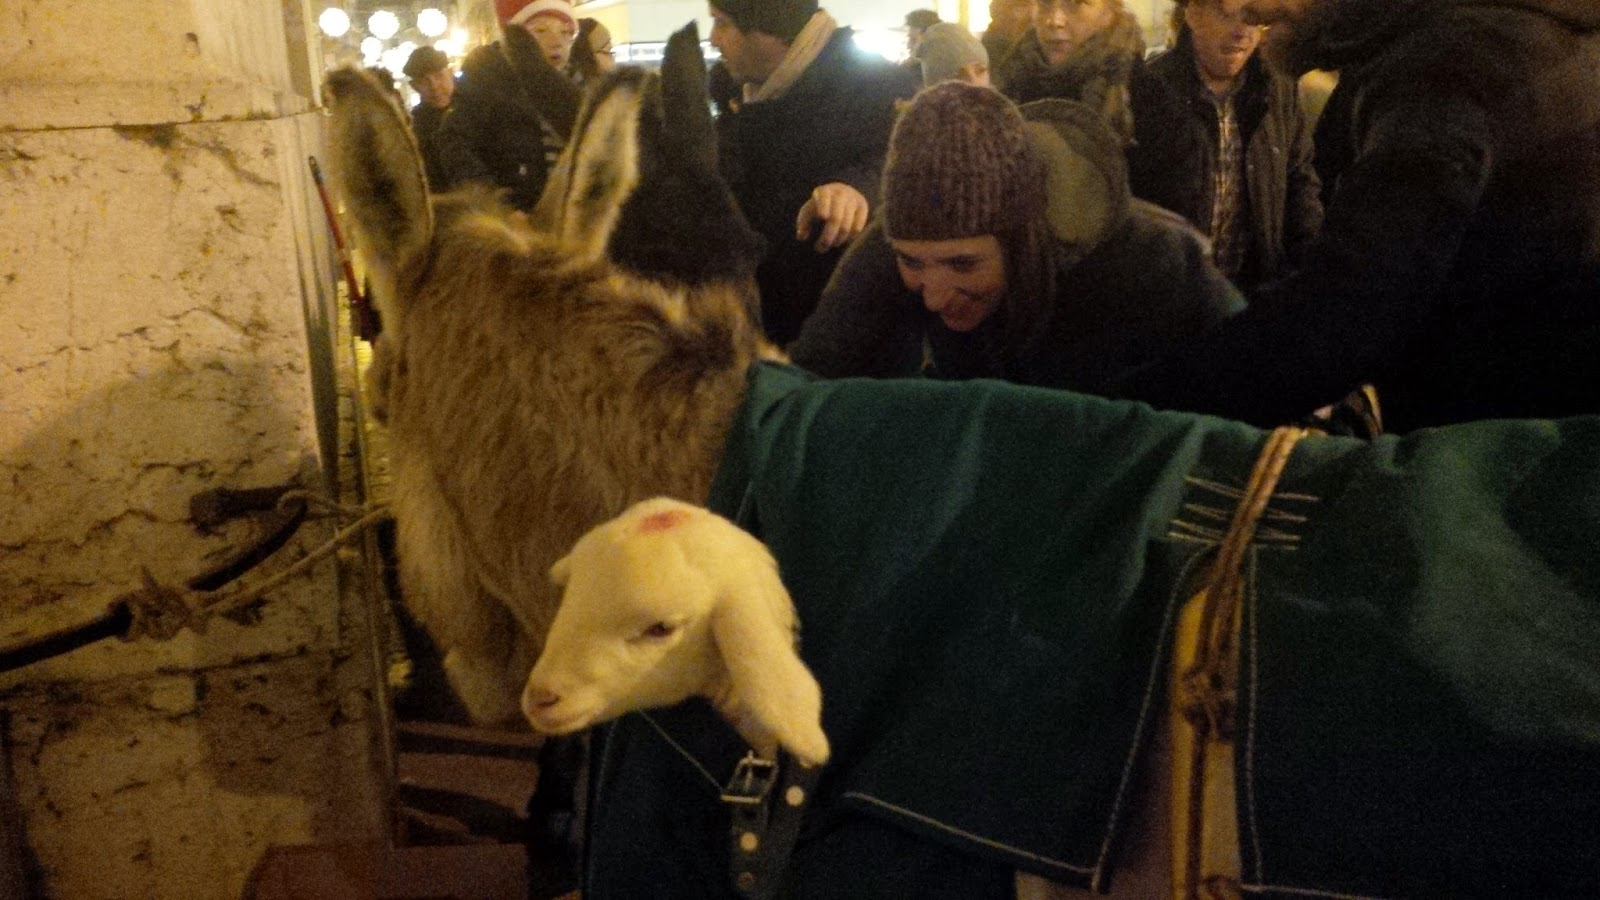 A tiny lamb is nestled in the saddlebag of the donkey